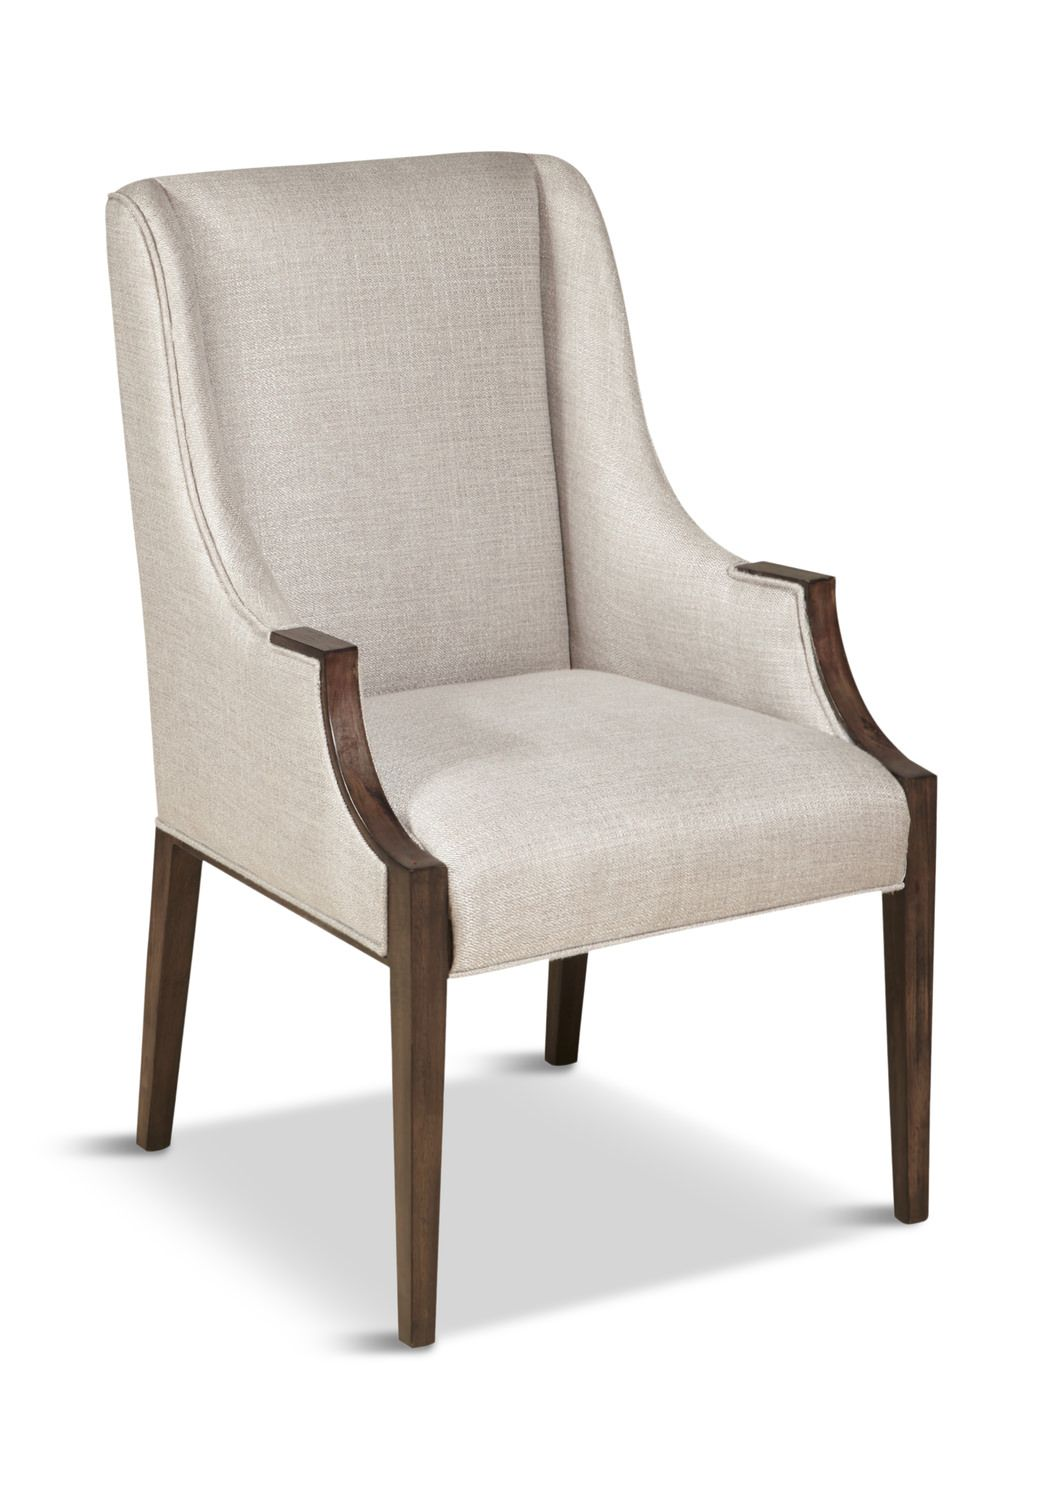 Fifth Avenue Dining Chair by Home Insights HOM Furniture